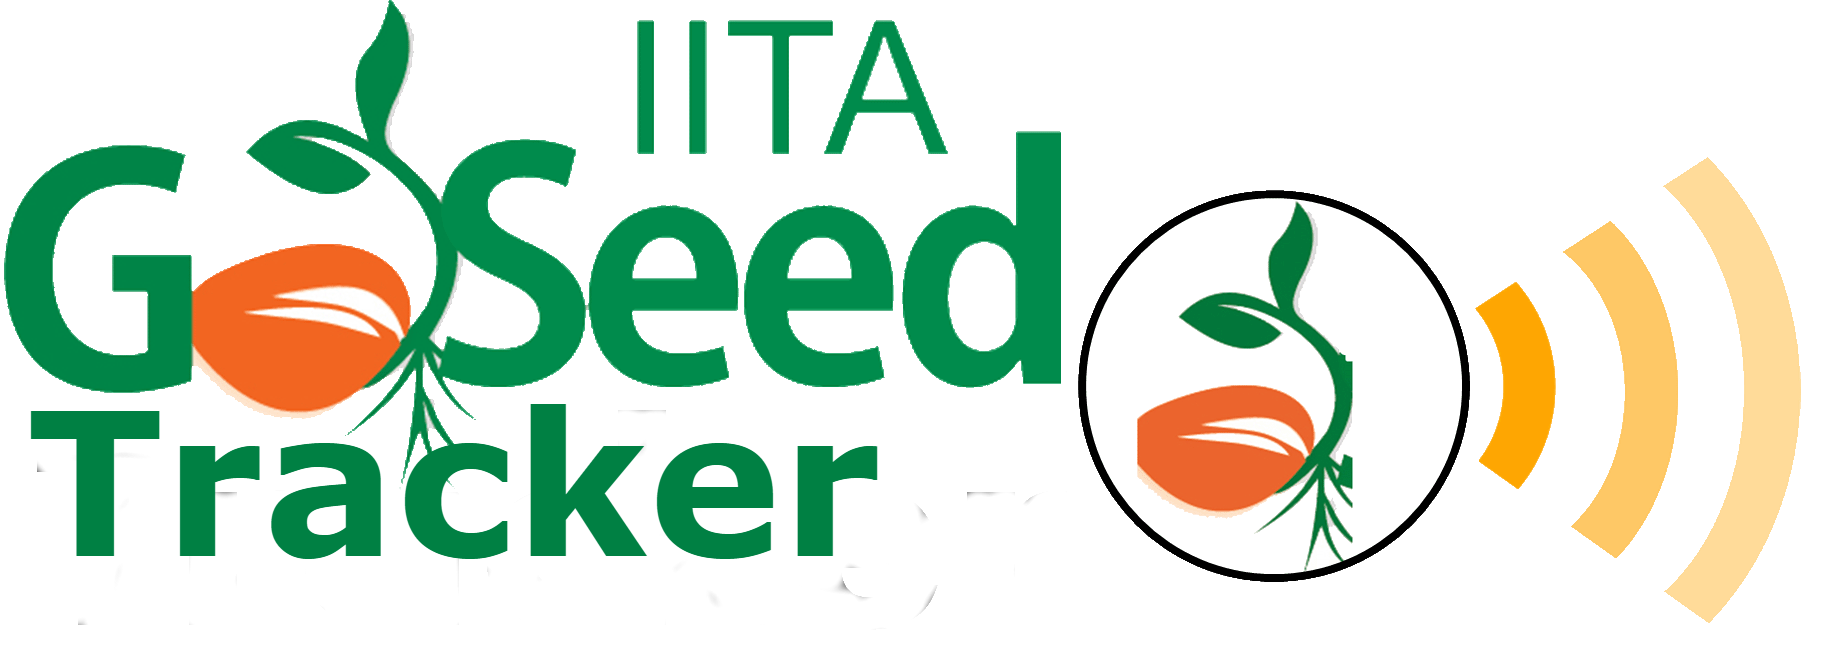 Seedtracker